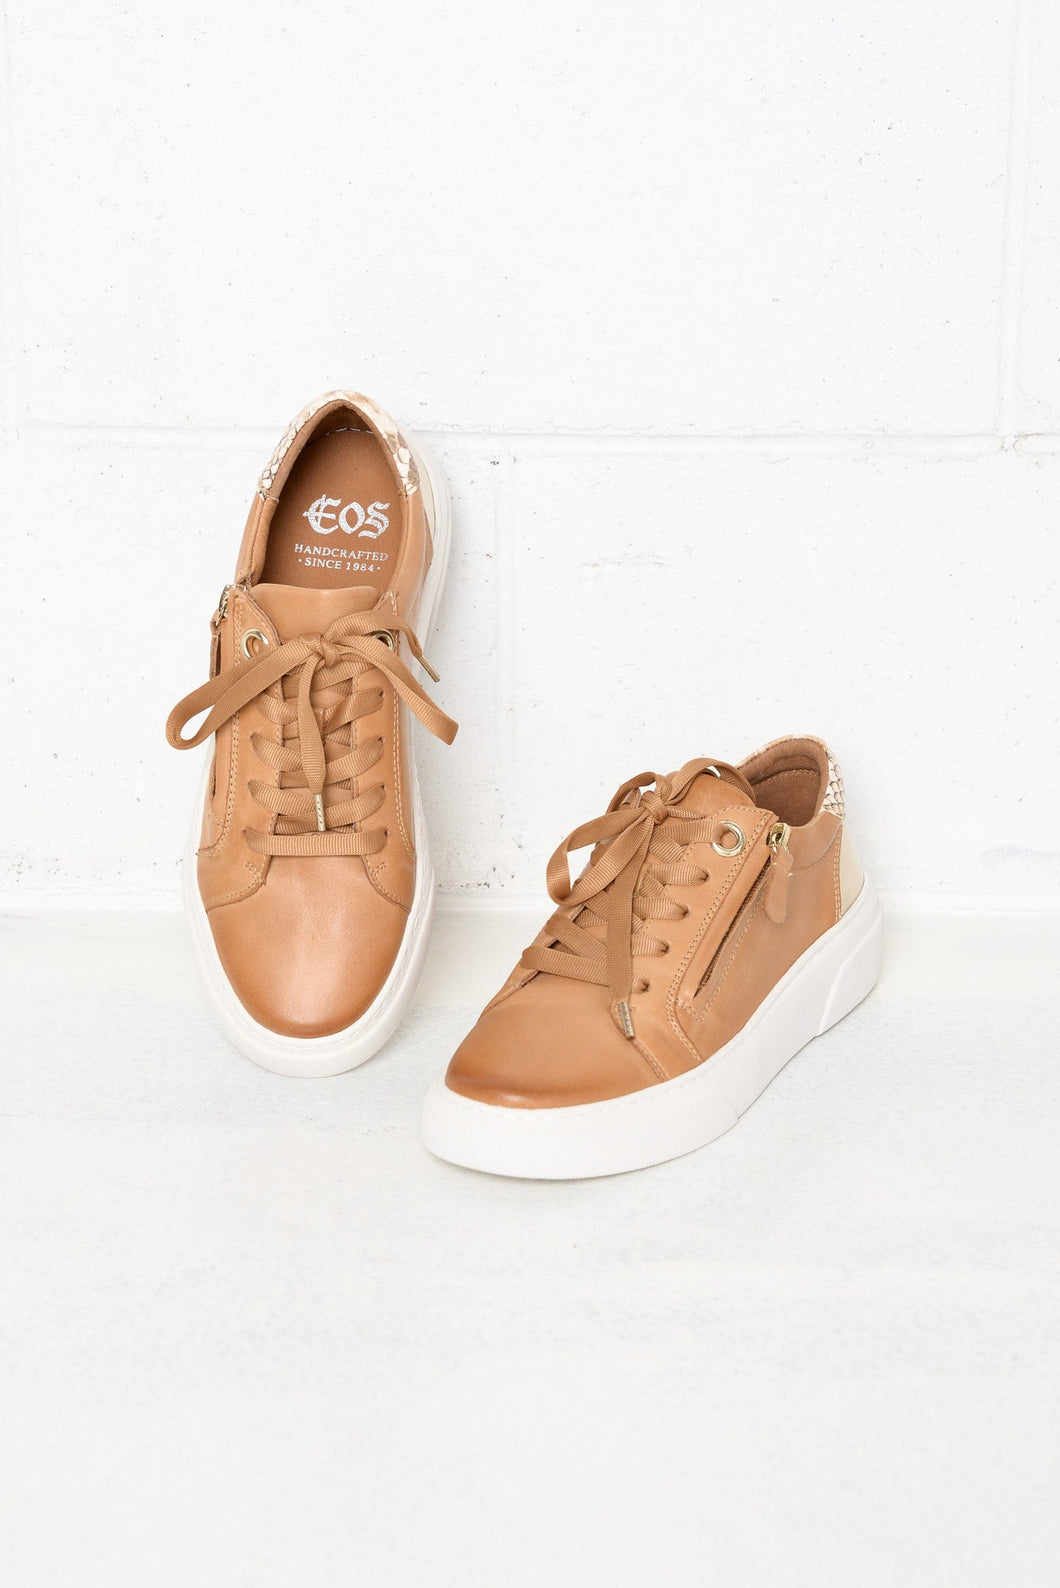 Marble Tan Leather Zip Sneaker